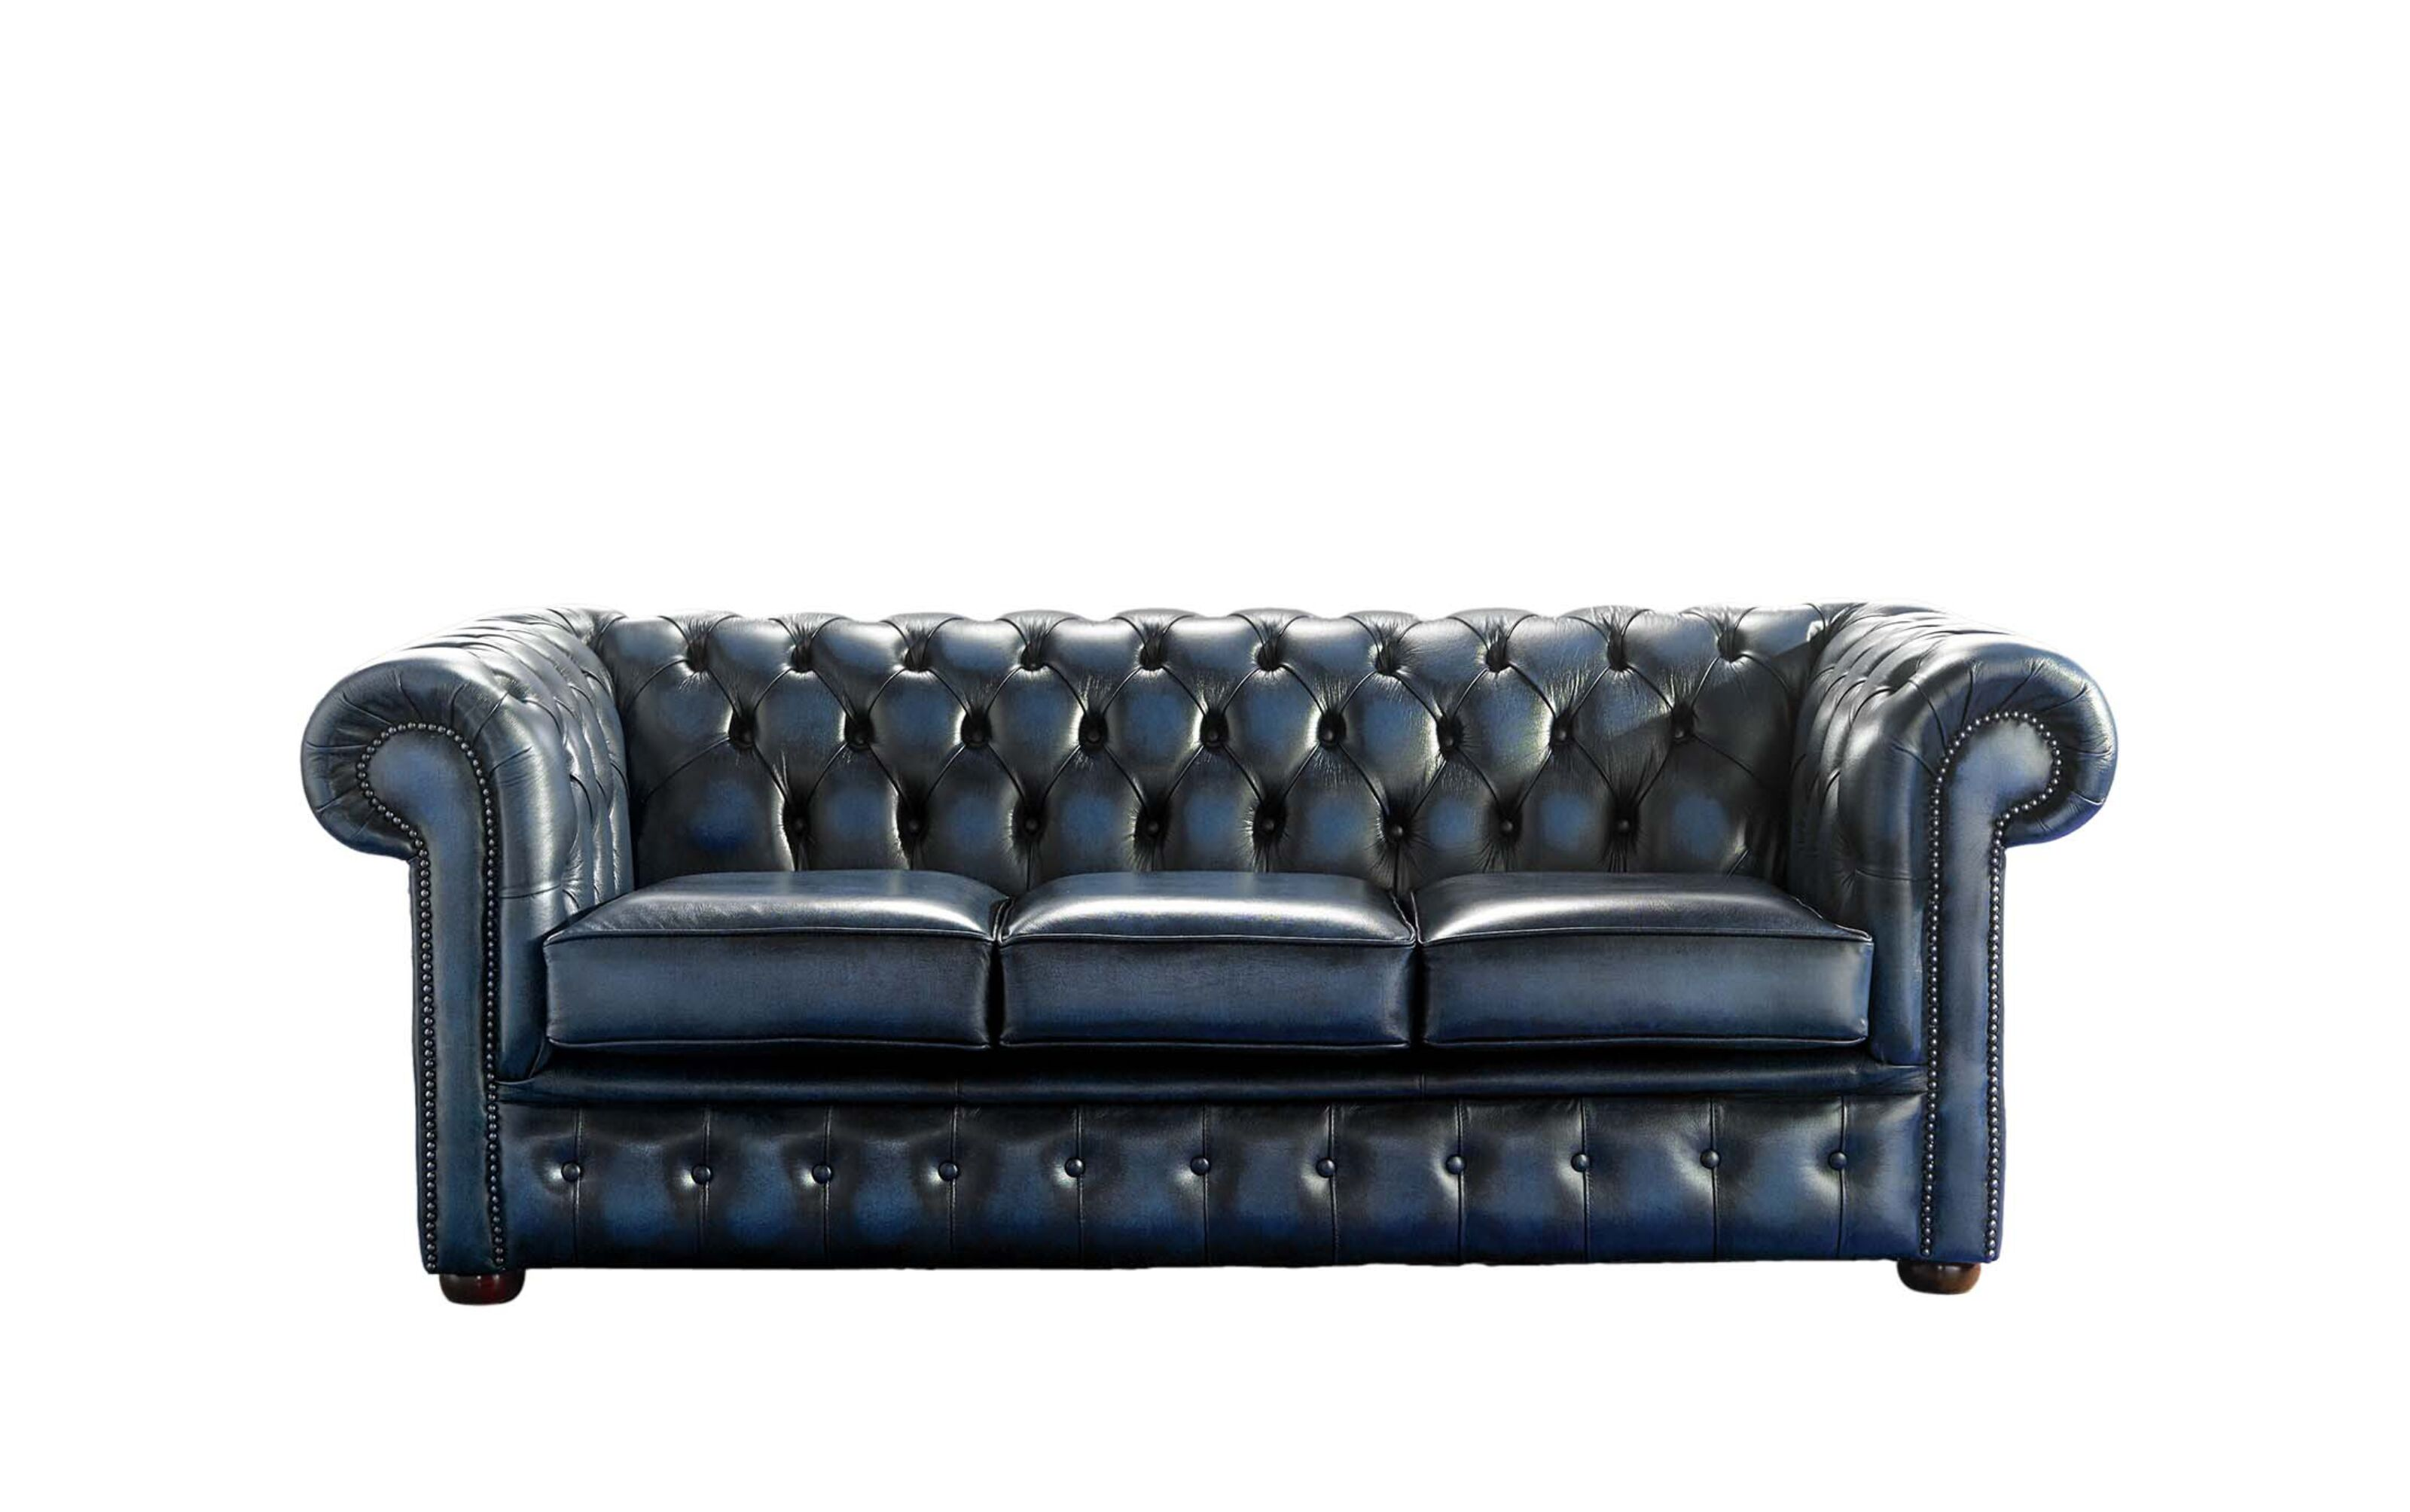 Bettsofa Vintage Chesterfield 3 Seater Blue Leather Antique Sofa Sofa Offers